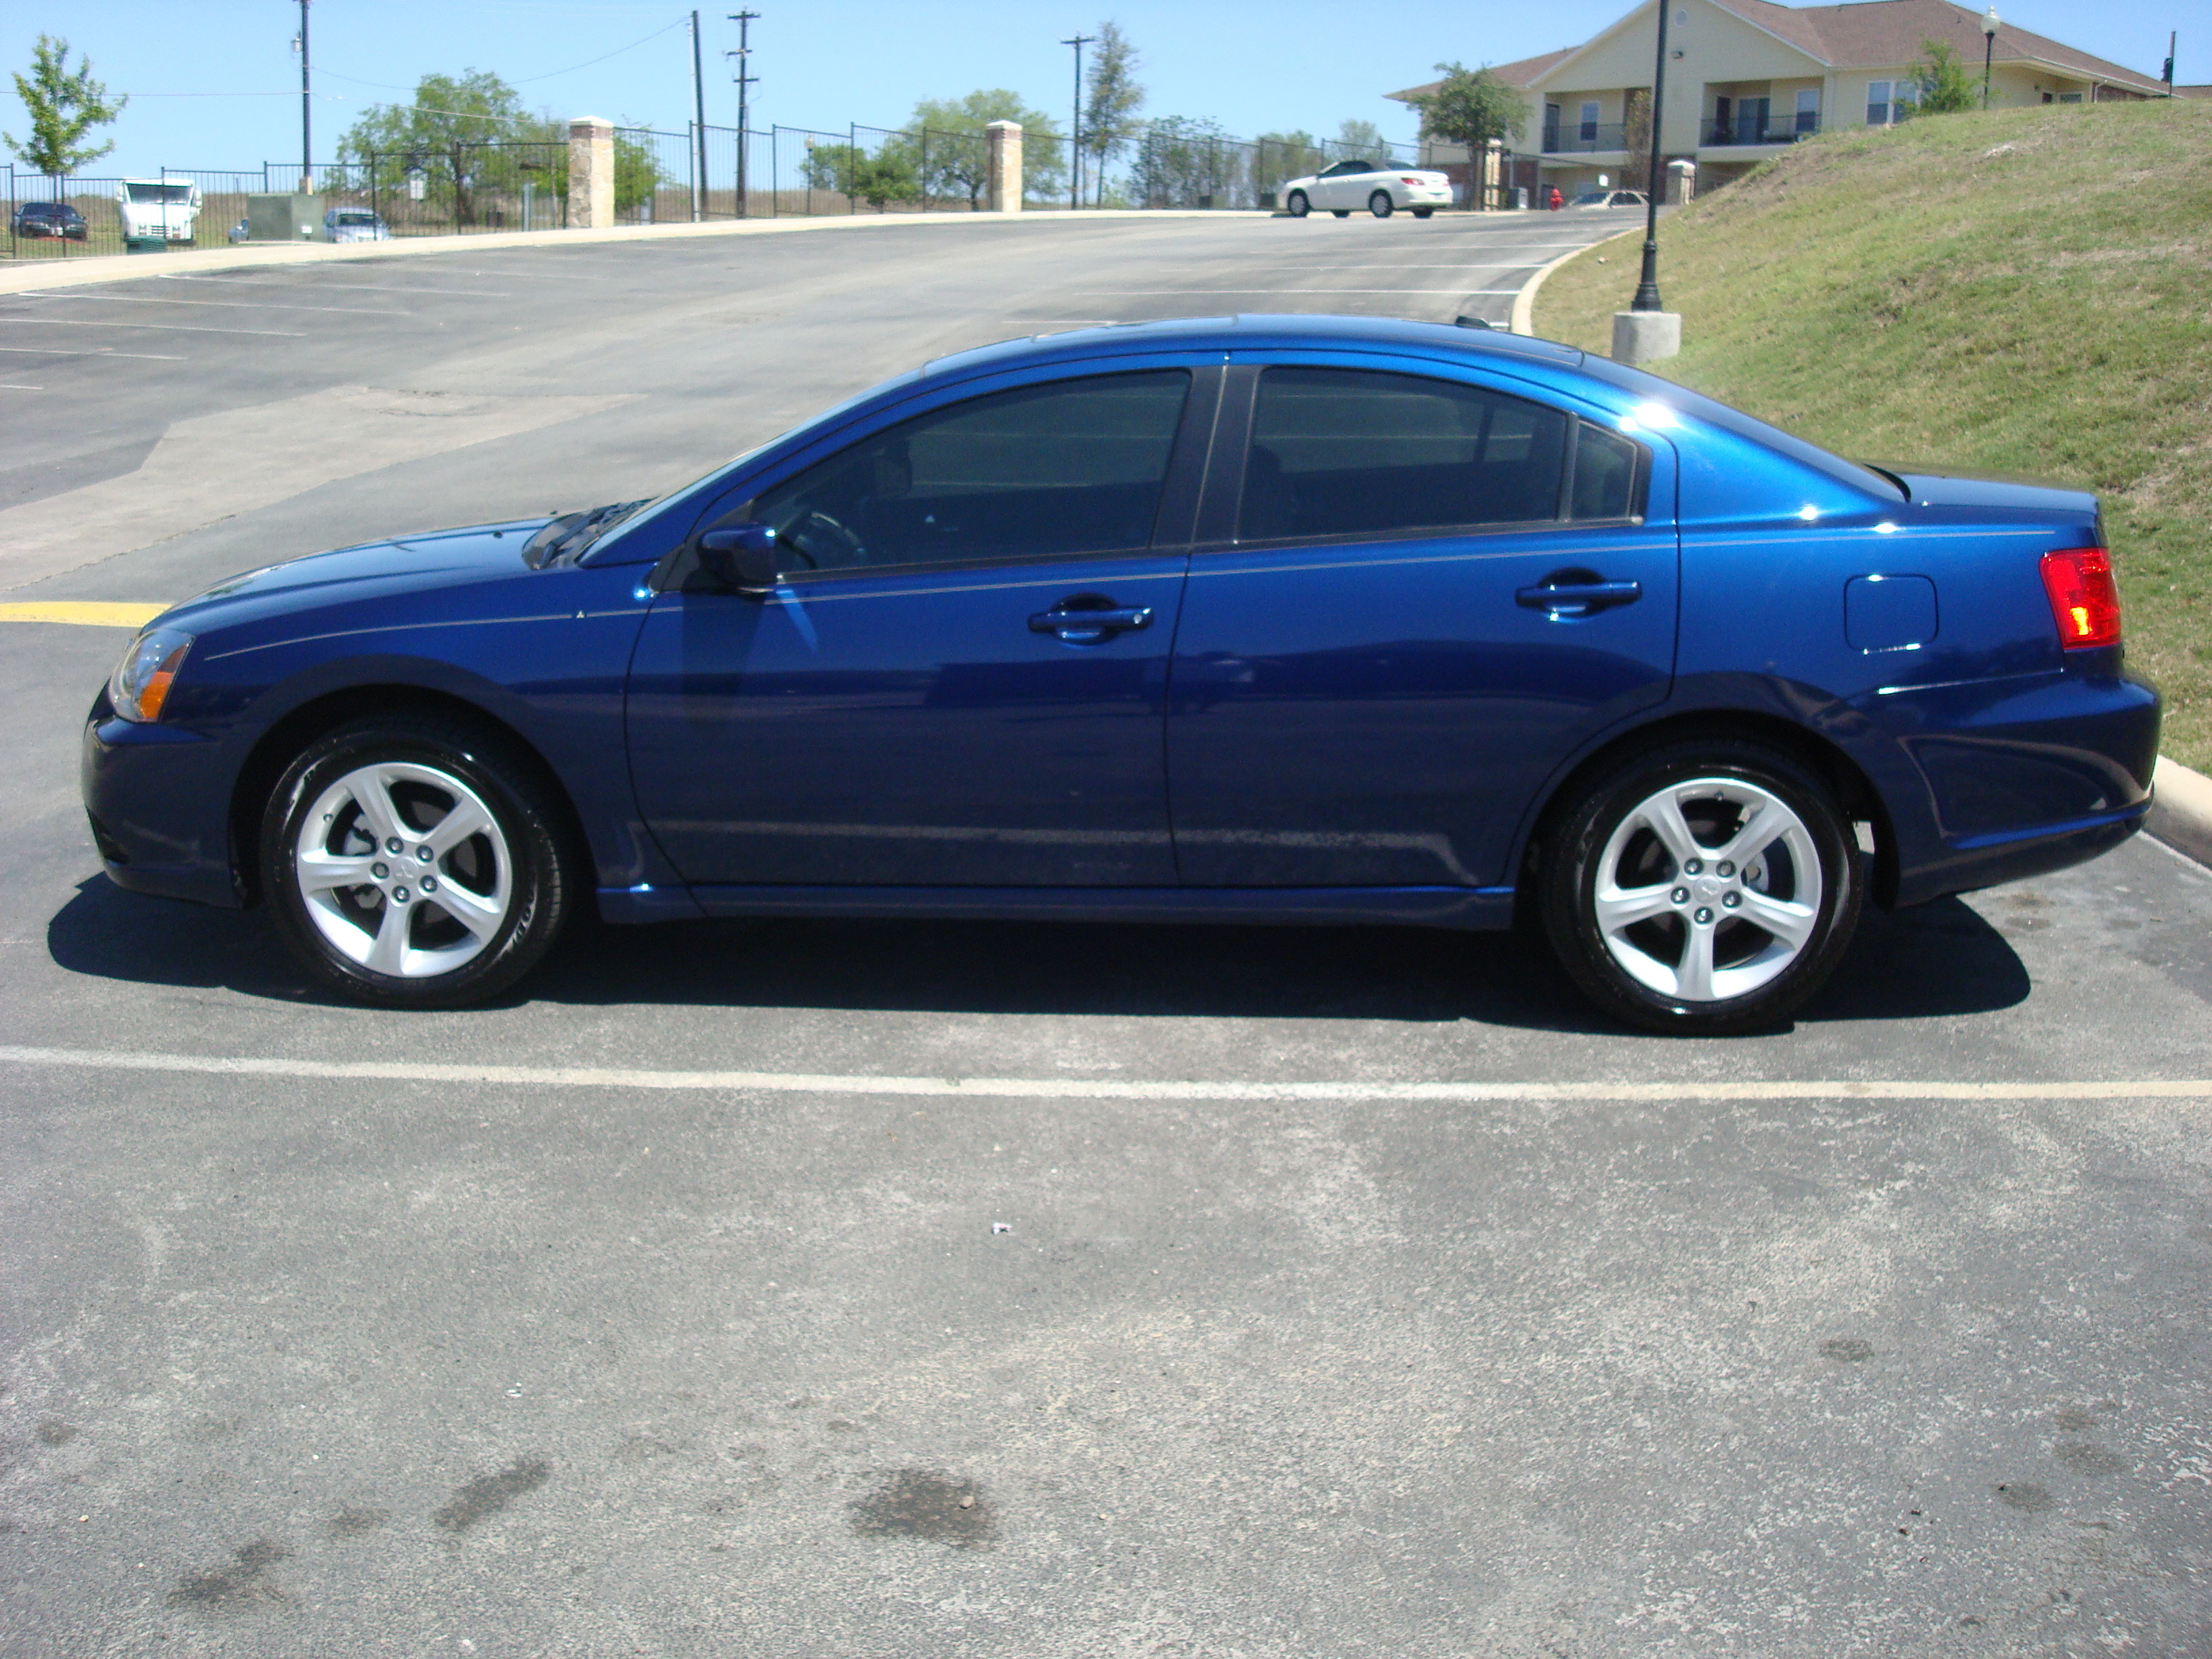 brian_00g 2009 mitsubishi galant specs, photos, modification info at